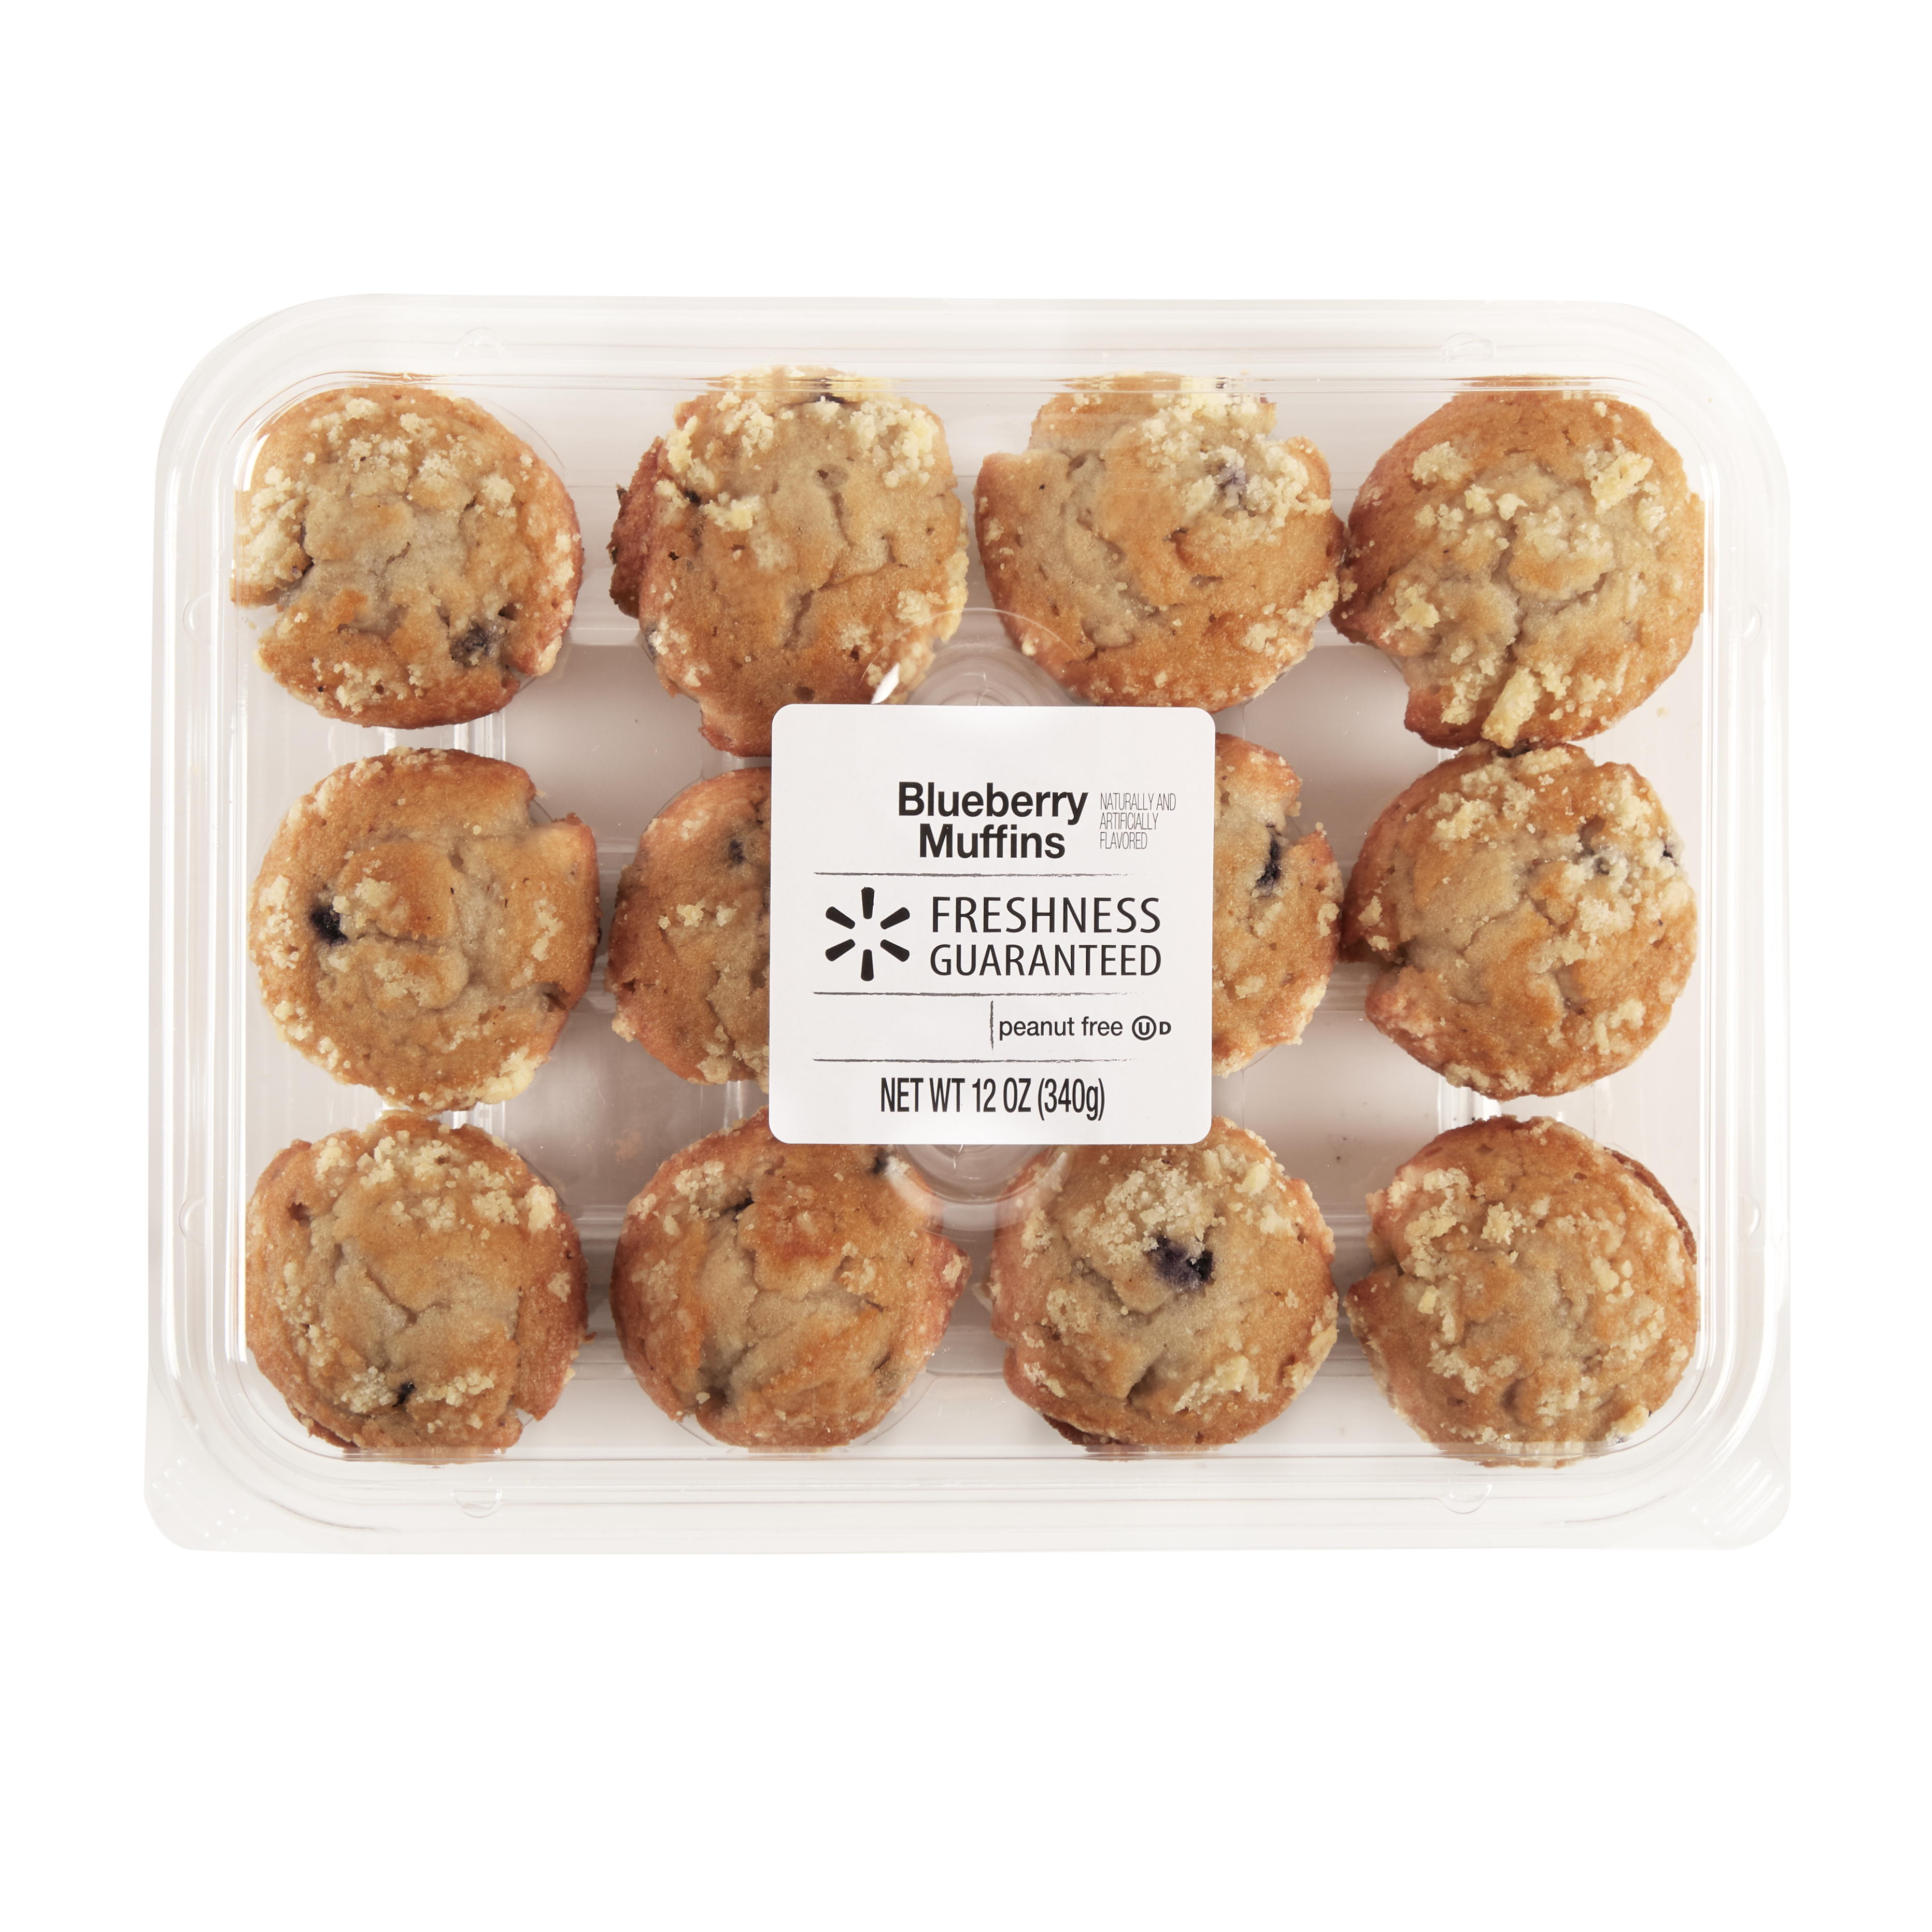 The Bakery at Walmart Mini Blueberry Muffins, 12 oz